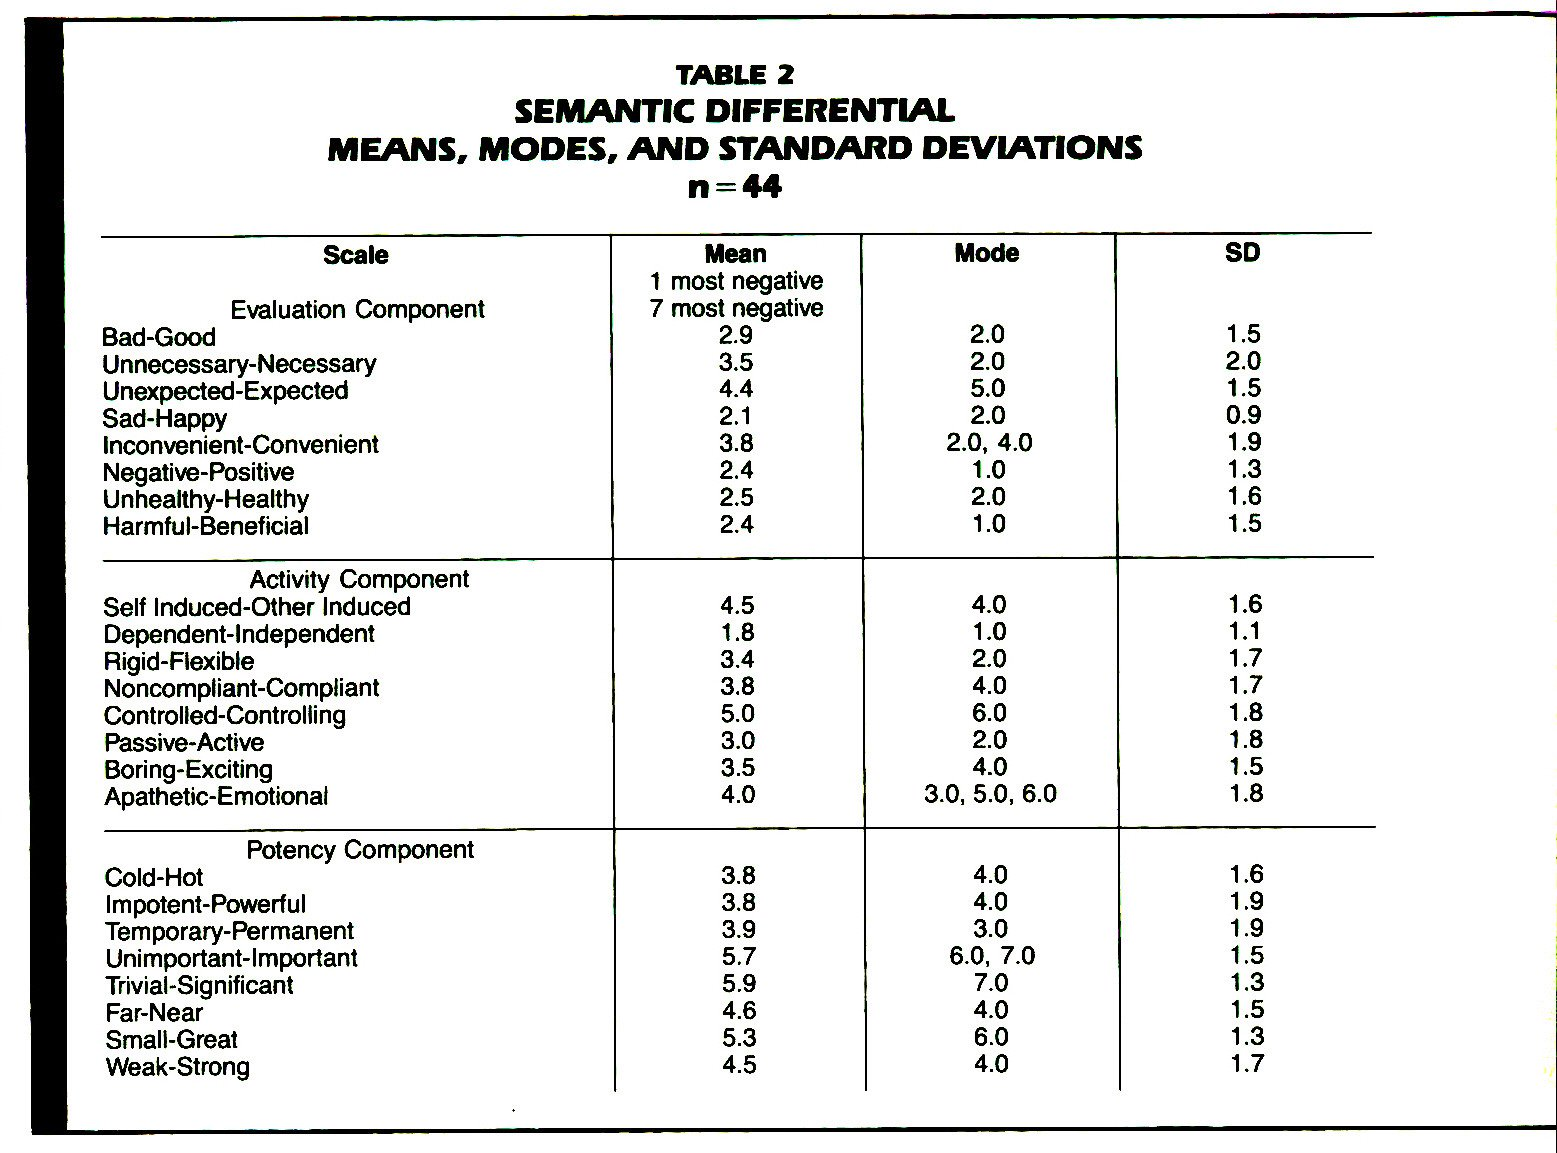 TABLE 2SEMANTIC DIFFERENTIAL MEANS, MODES, AND STANDARD DEVIATIONS n = 44